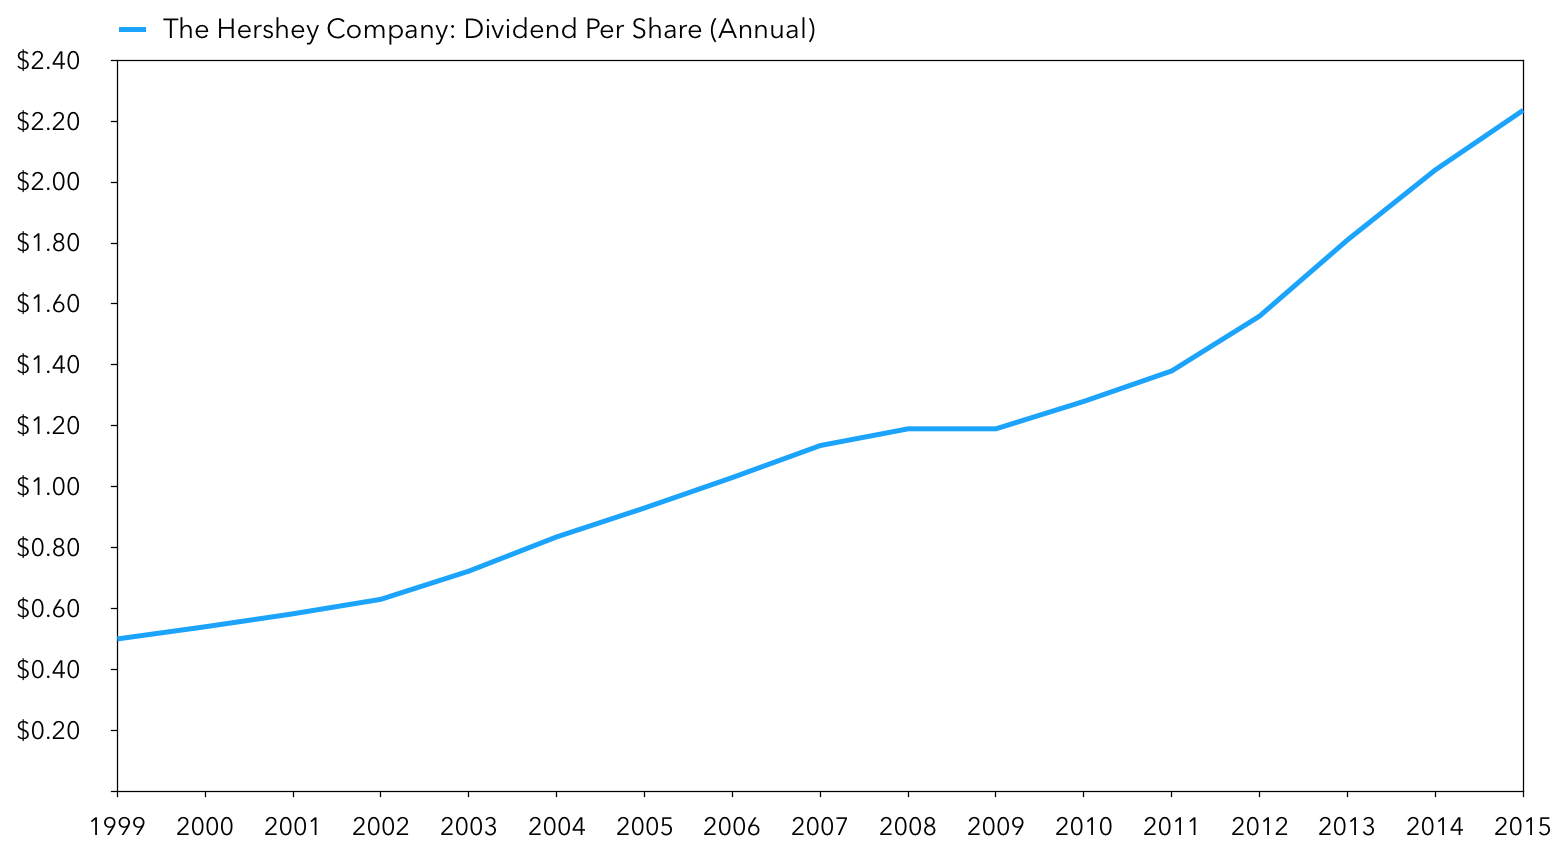 Hershey Dividend History: A Typical Stock For Buy-And-Hold Millionaire Investors